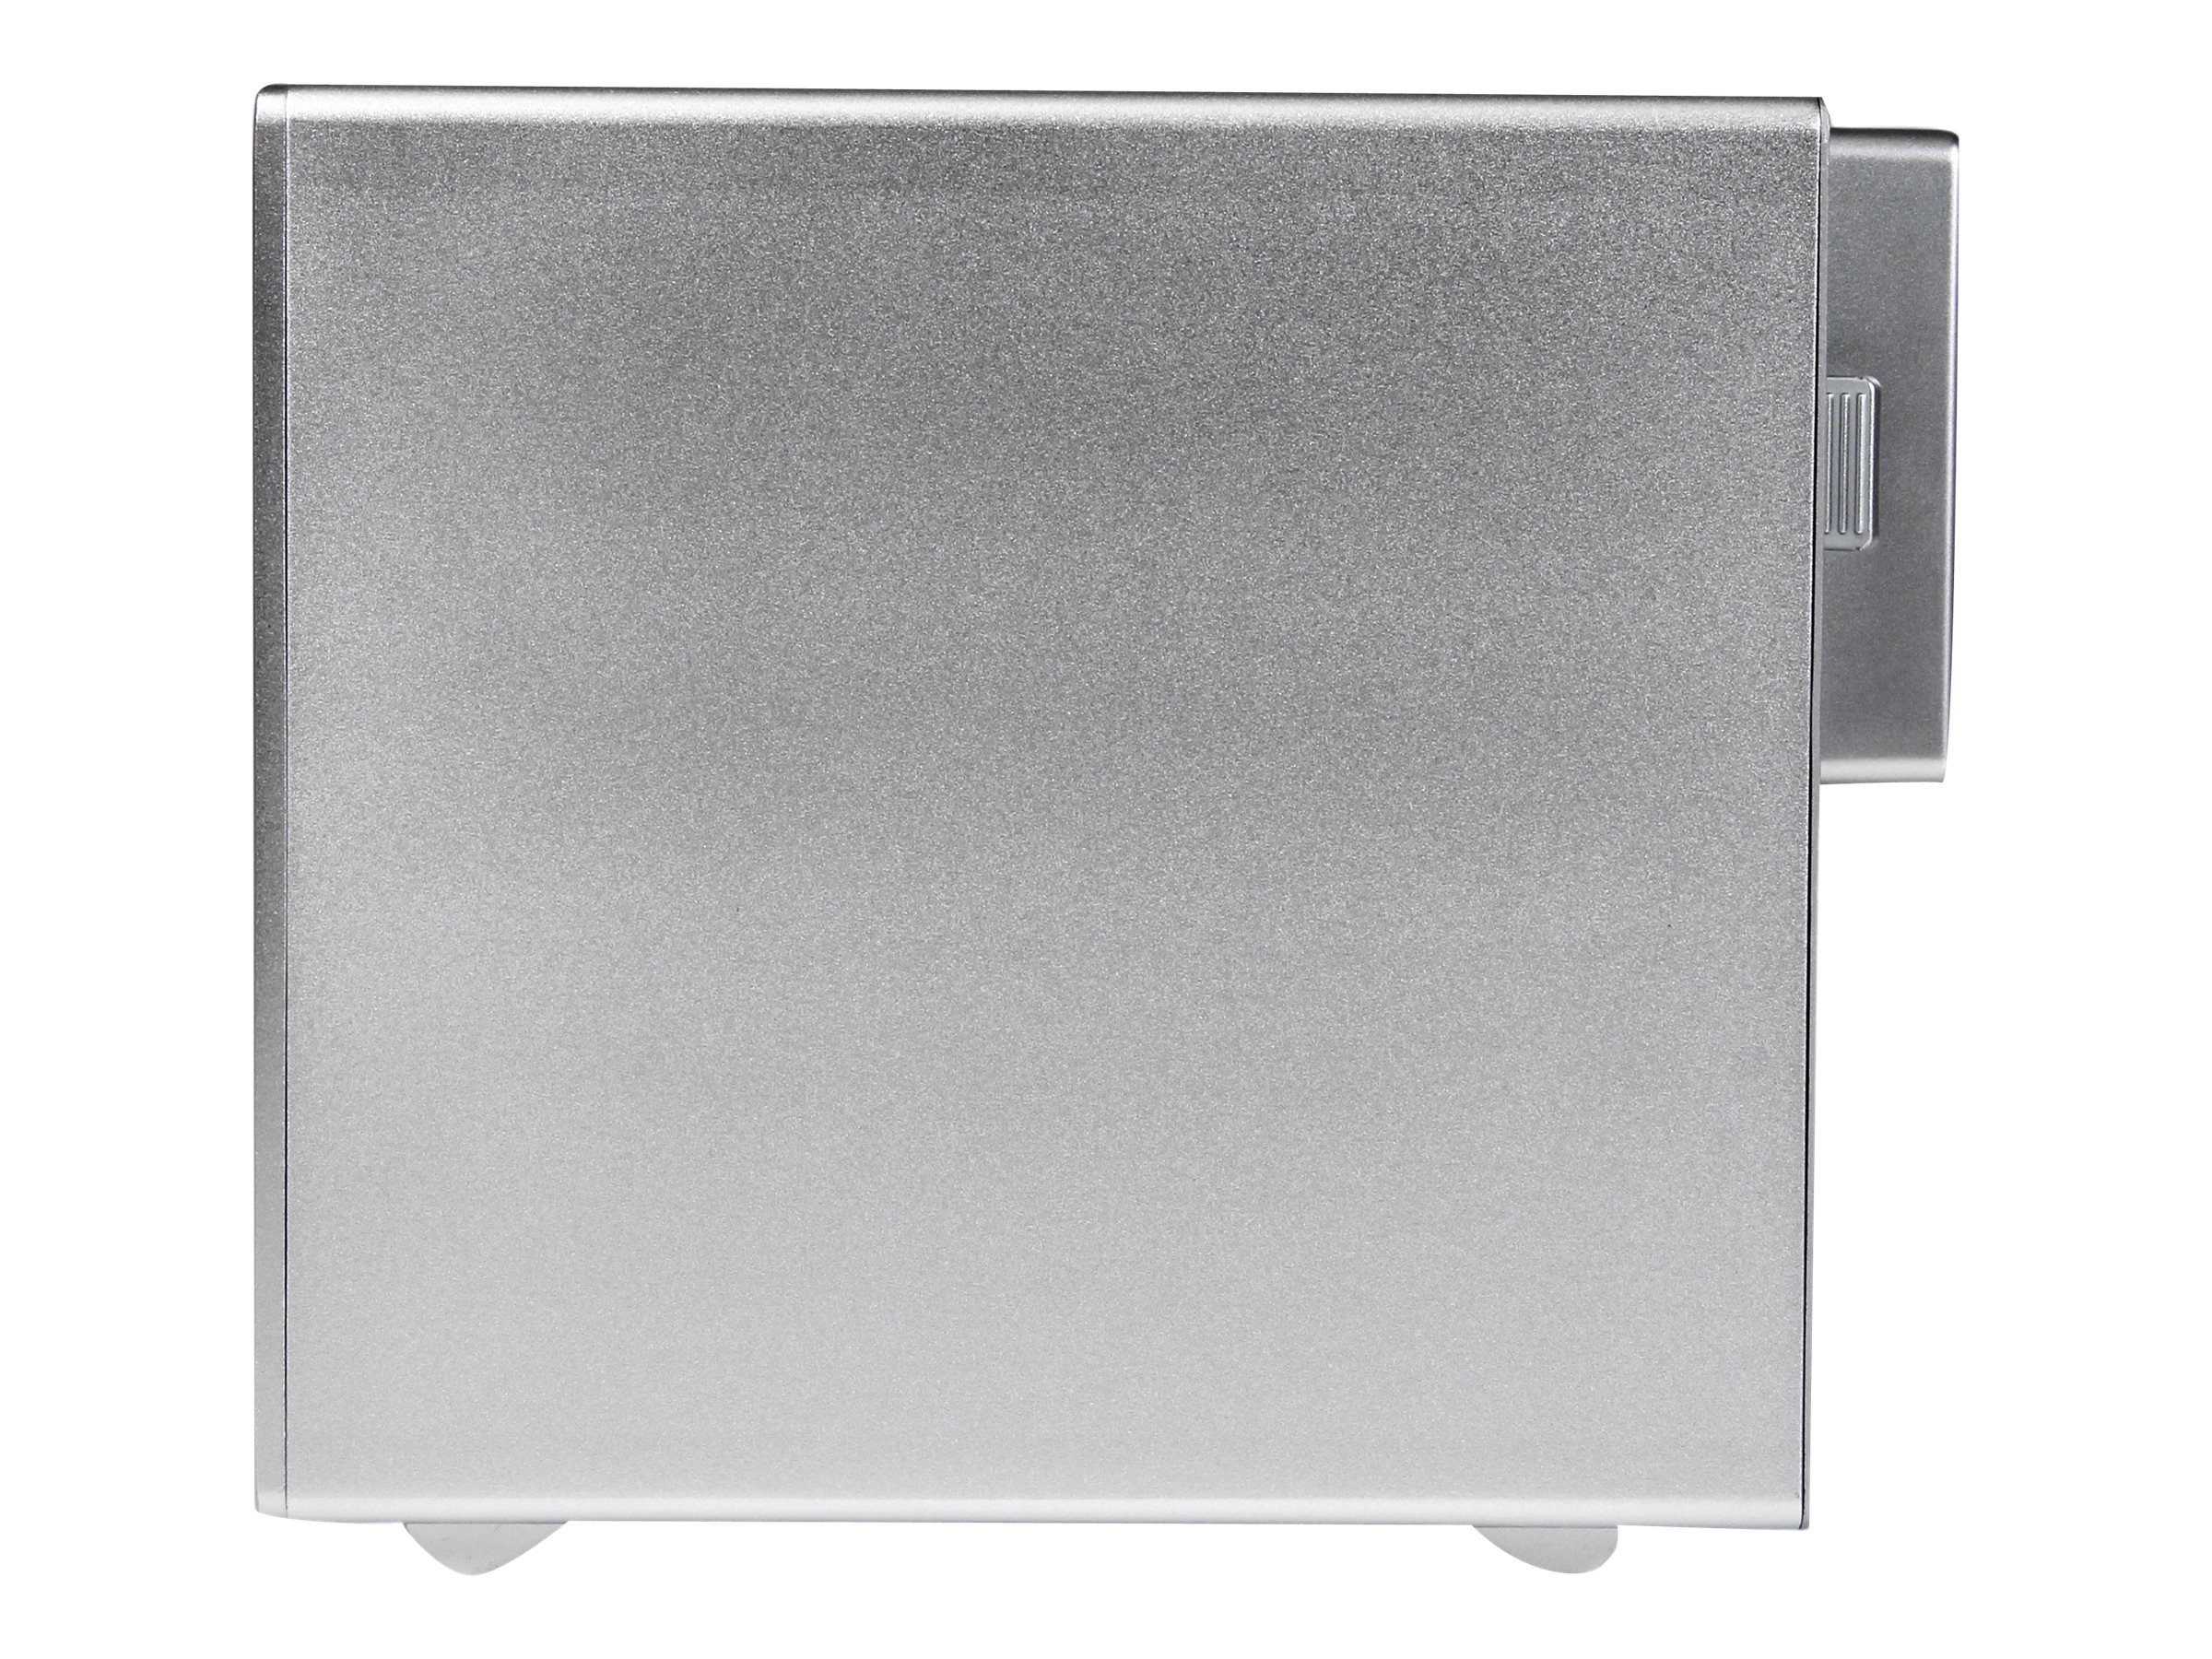 StarTech.com 4-Bay Thunderbolt 2 Hard Drive Enclosure with RAID for 3.5 HDDs, S354SMTB2R